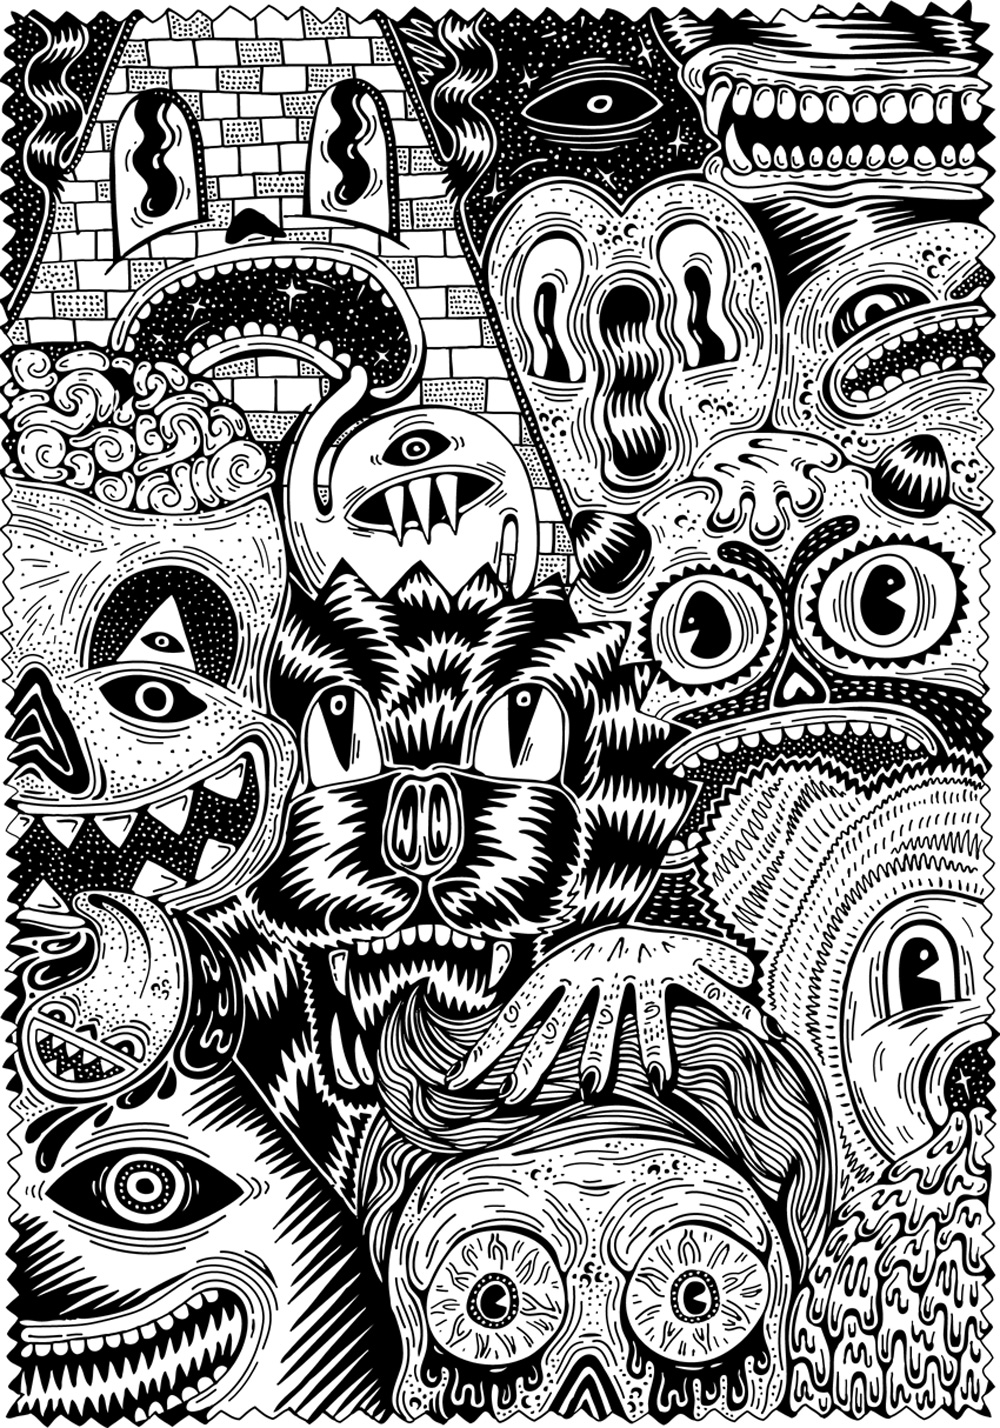 Coloring pages for adults only coloring pages for Halloween coloring pages for adults printables